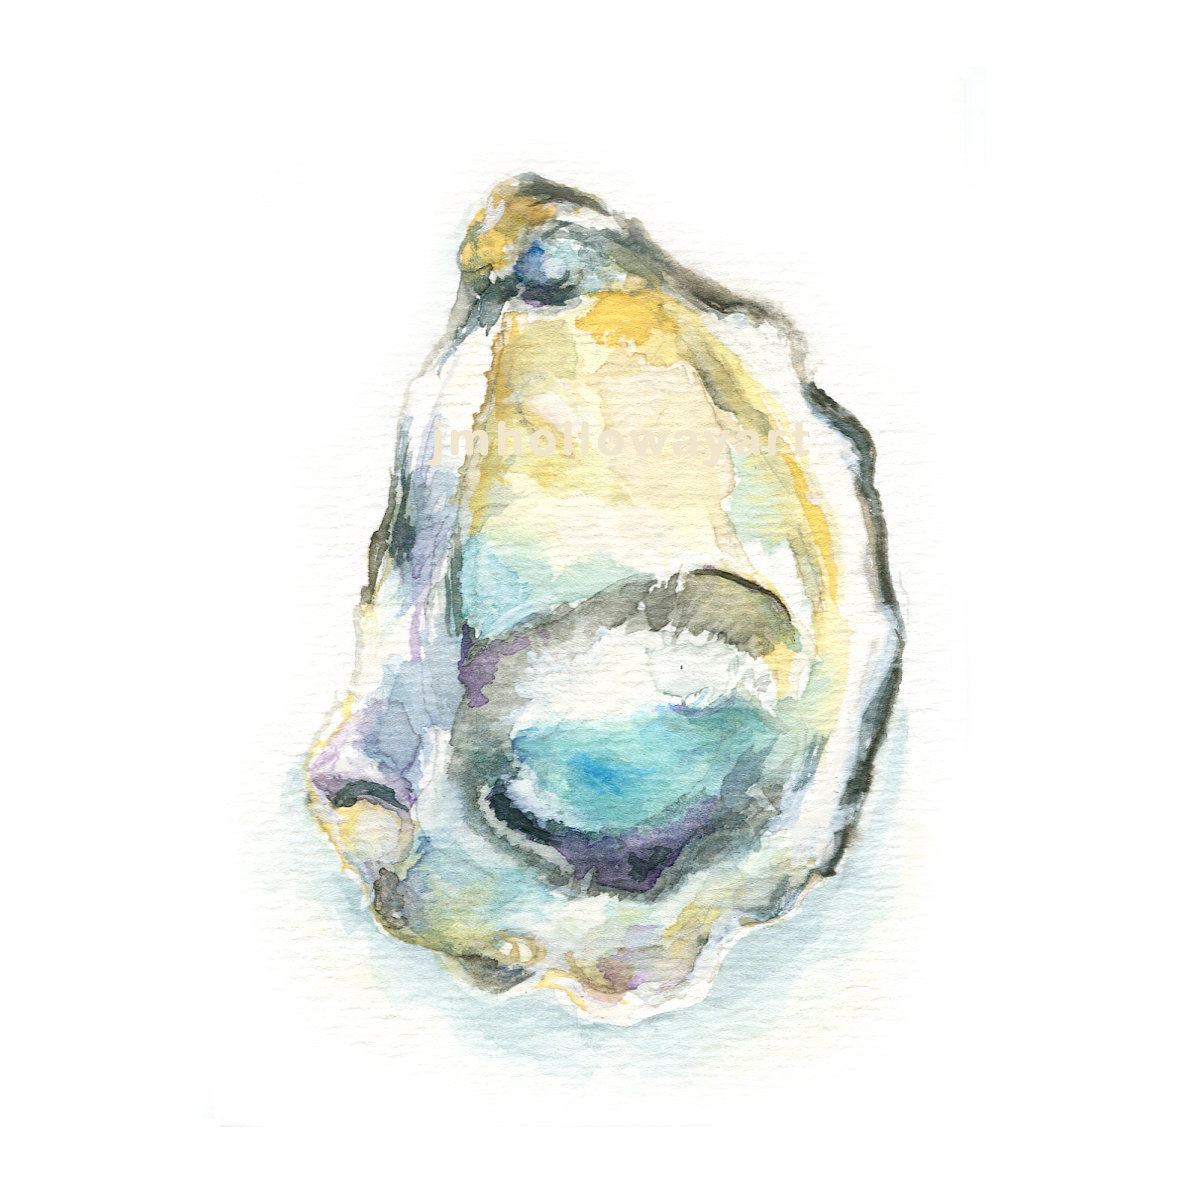 Oyster clipart watercolor. Shell drawing at getdrawings clip art freeuse stock